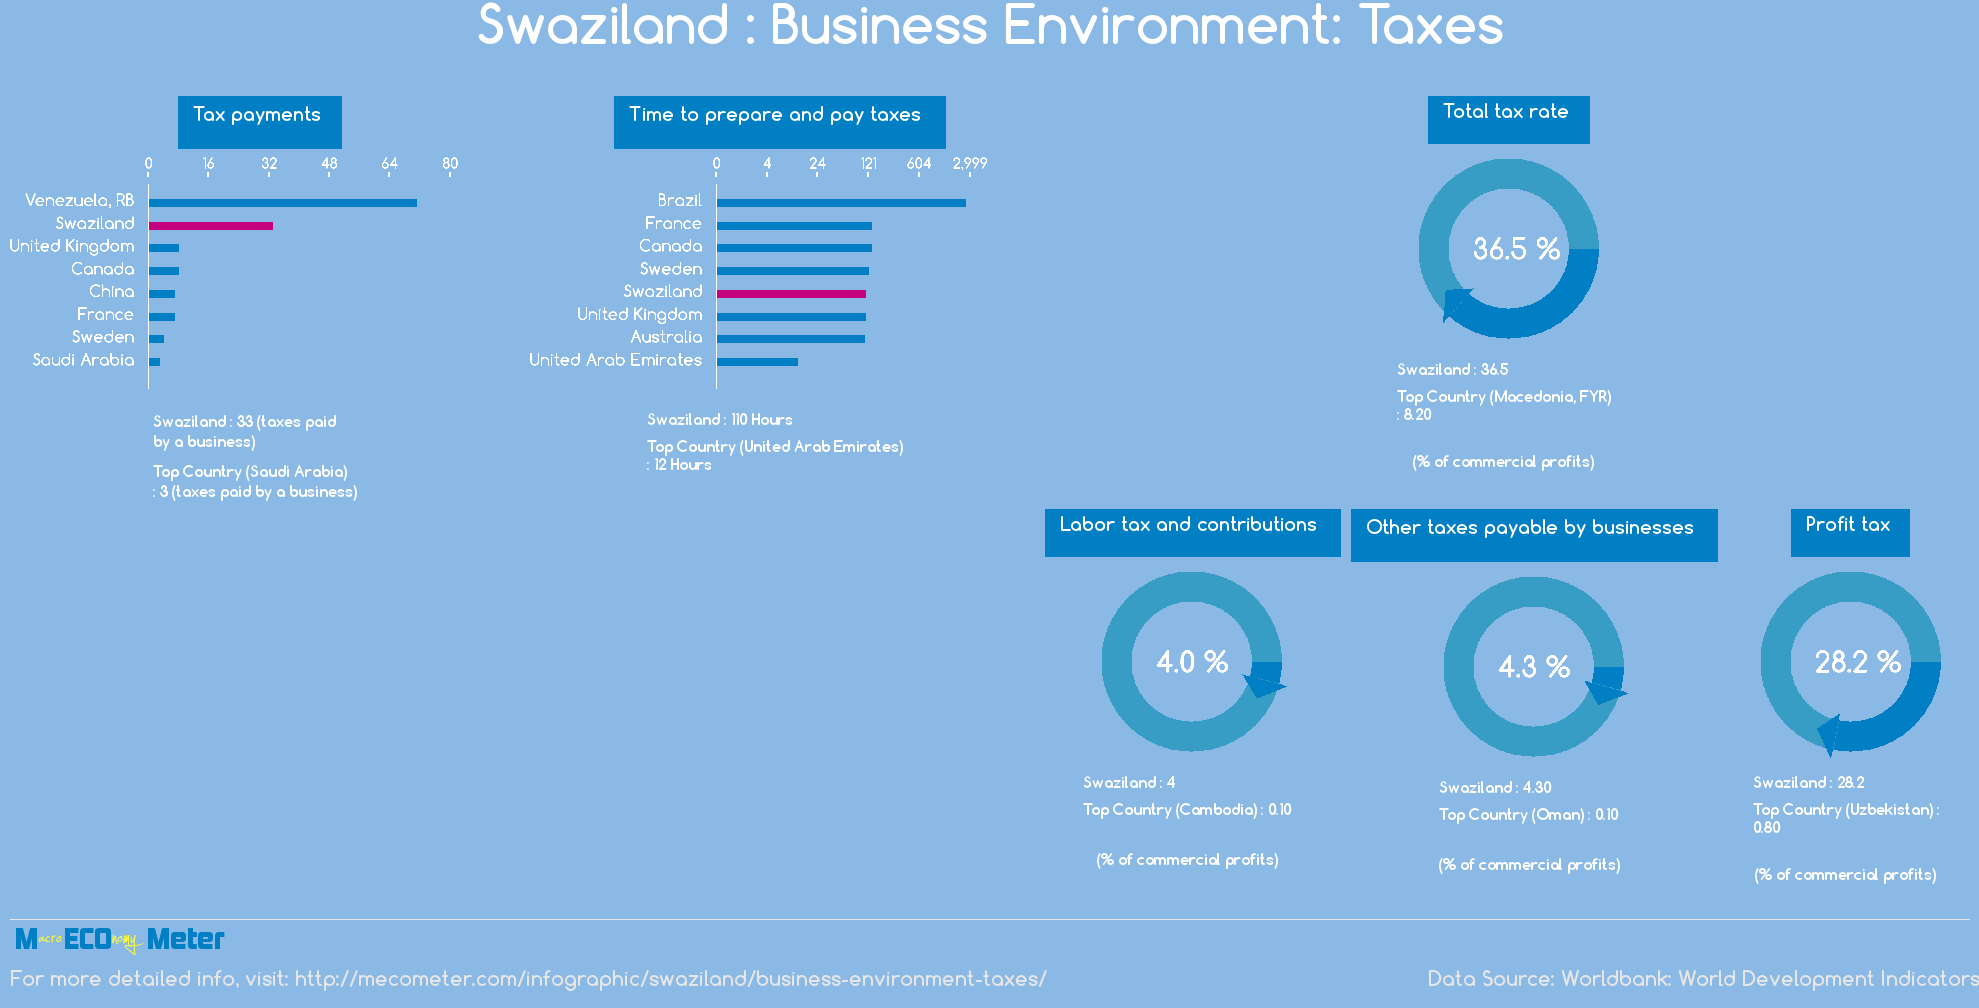 Swaziland : Business Environment: Taxes